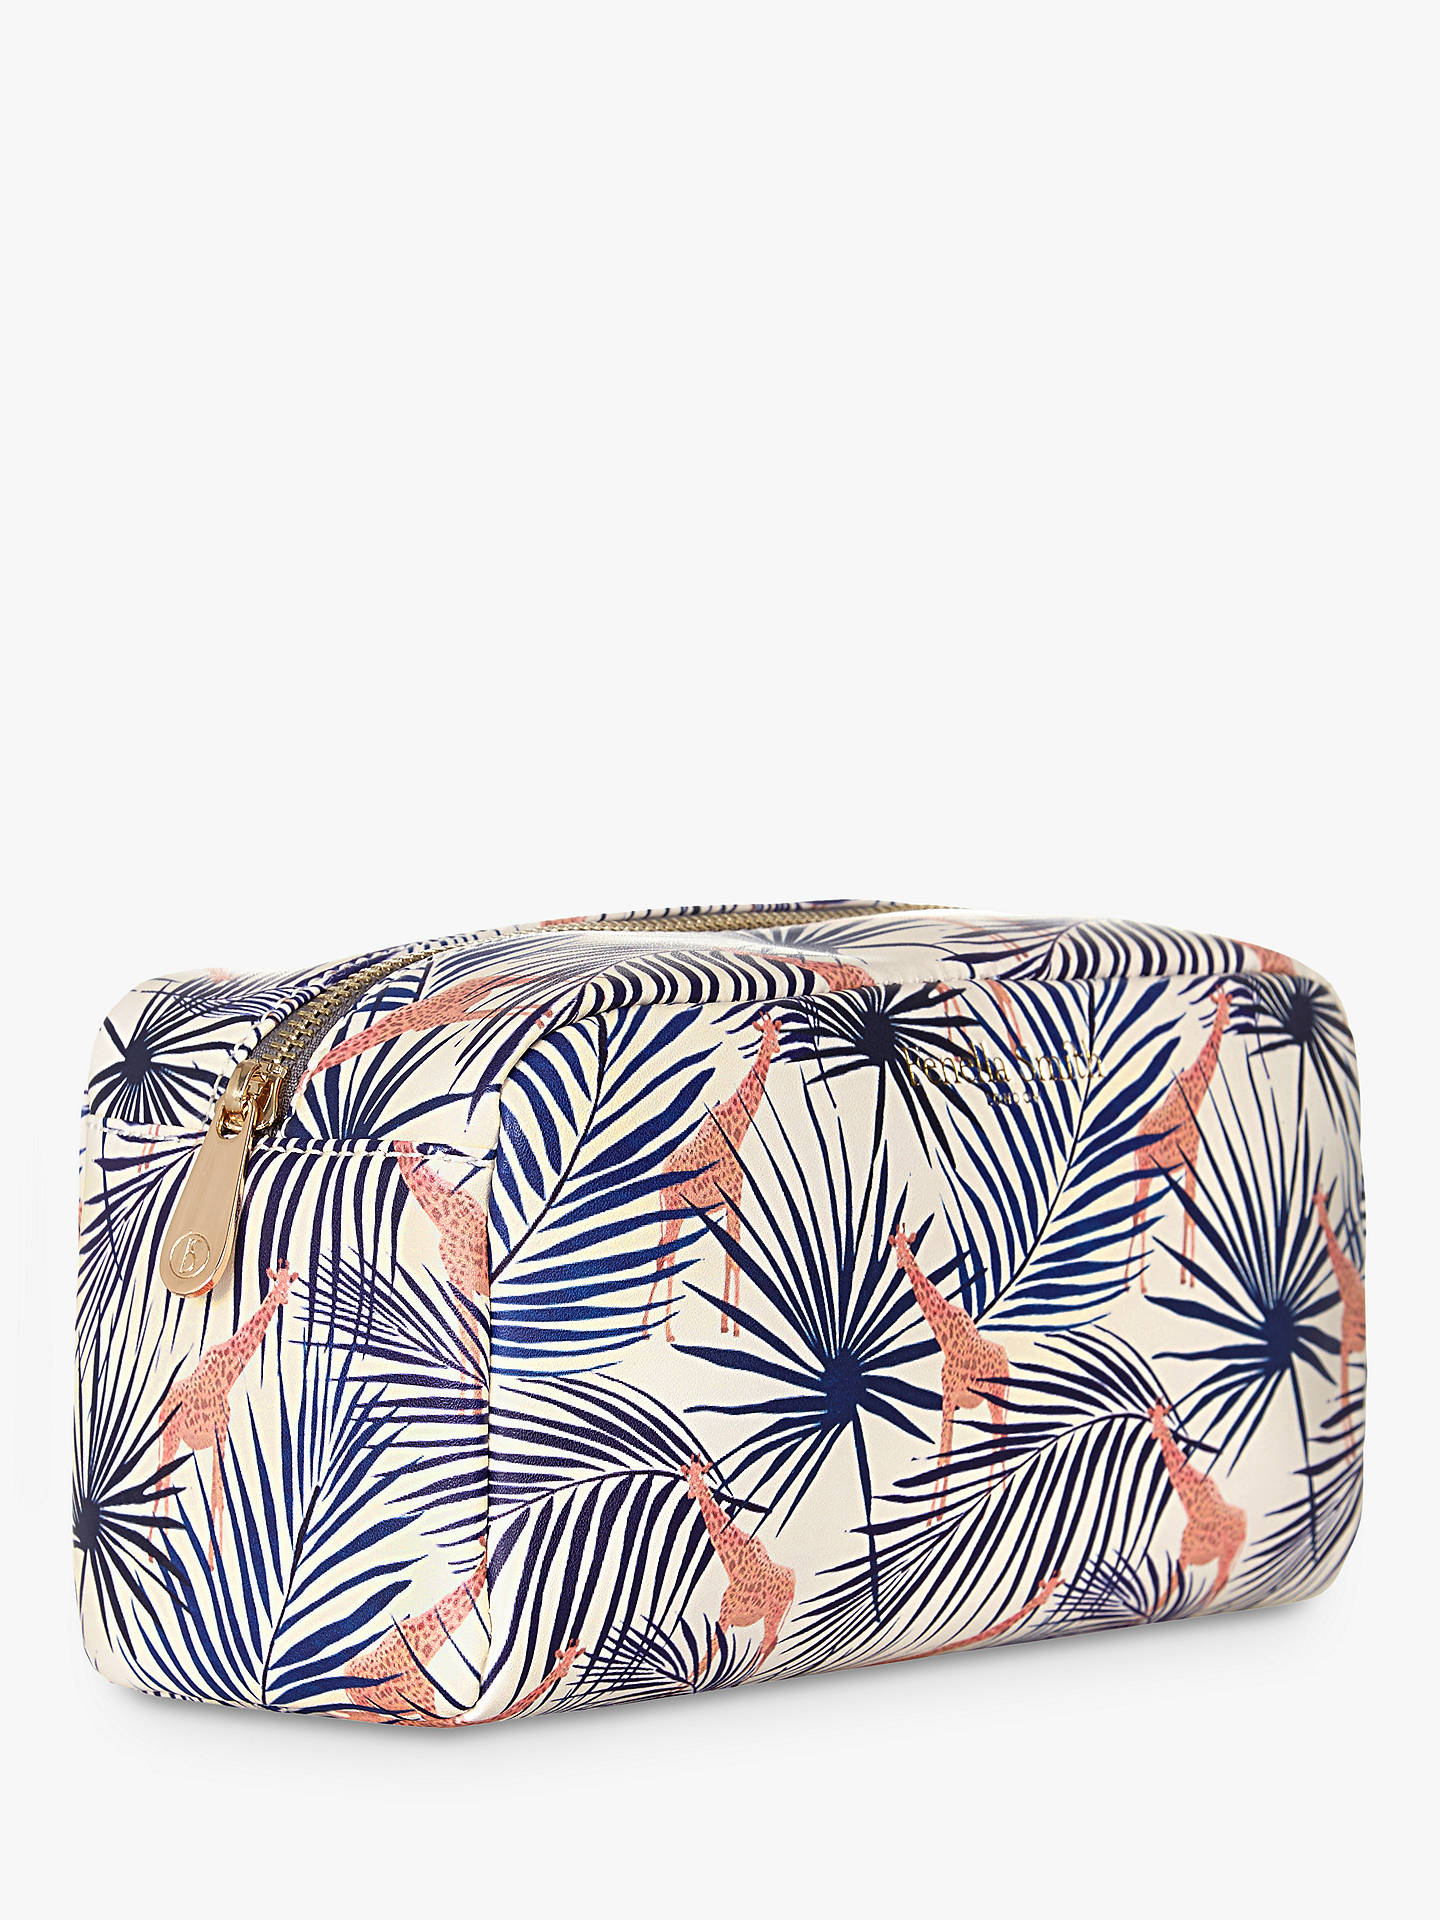 Buy Fenella Smith Giraffe & Palm Wash Bag Online at johnlewis.com